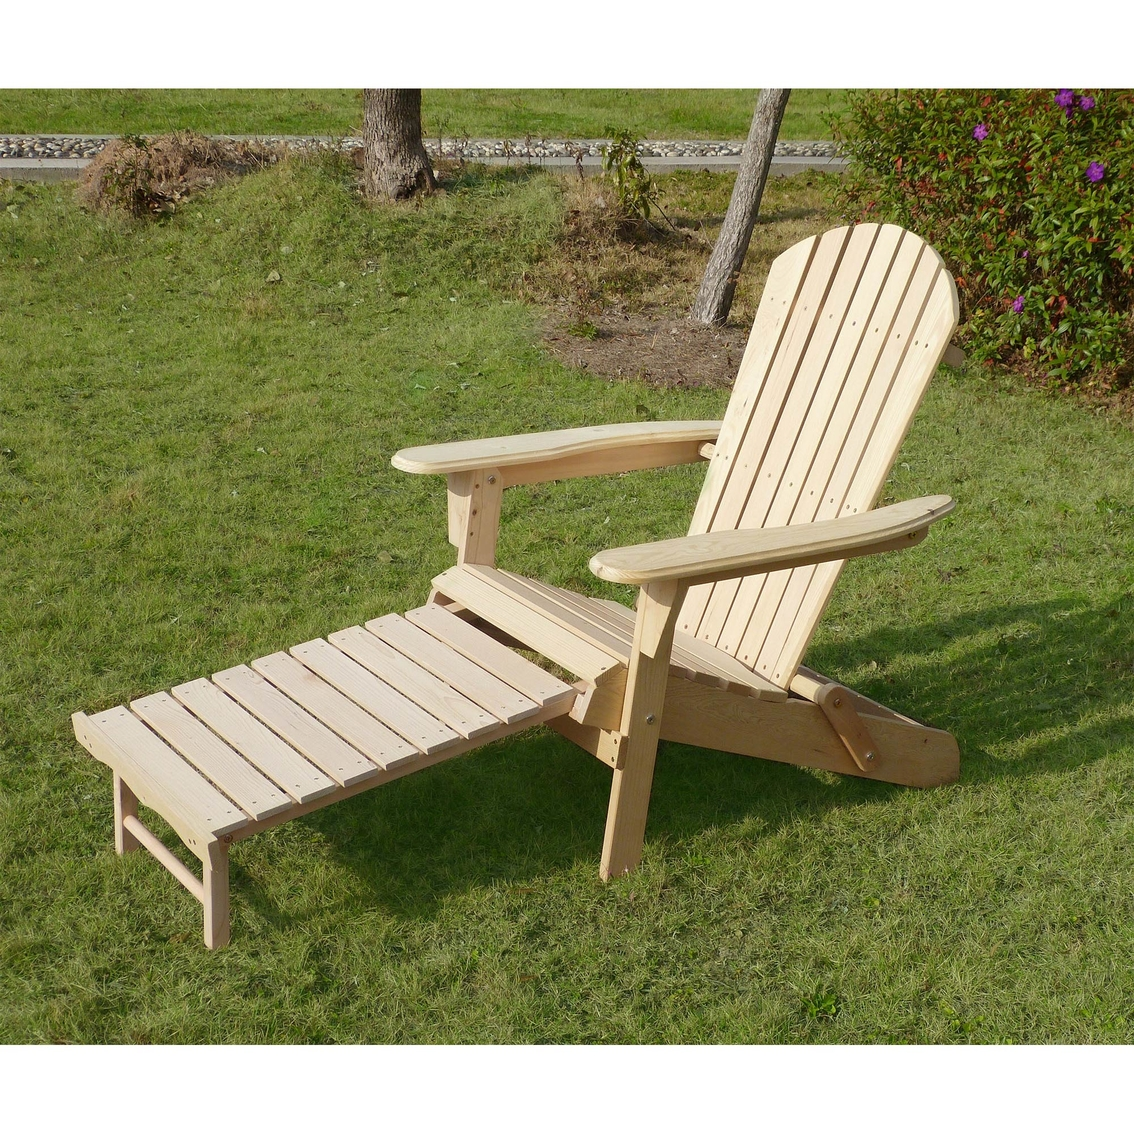 Super Northbeam Adirondack Chair Kit With Pullout Ottoman Gmtry Best Dining Table And Chair Ideas Images Gmtryco